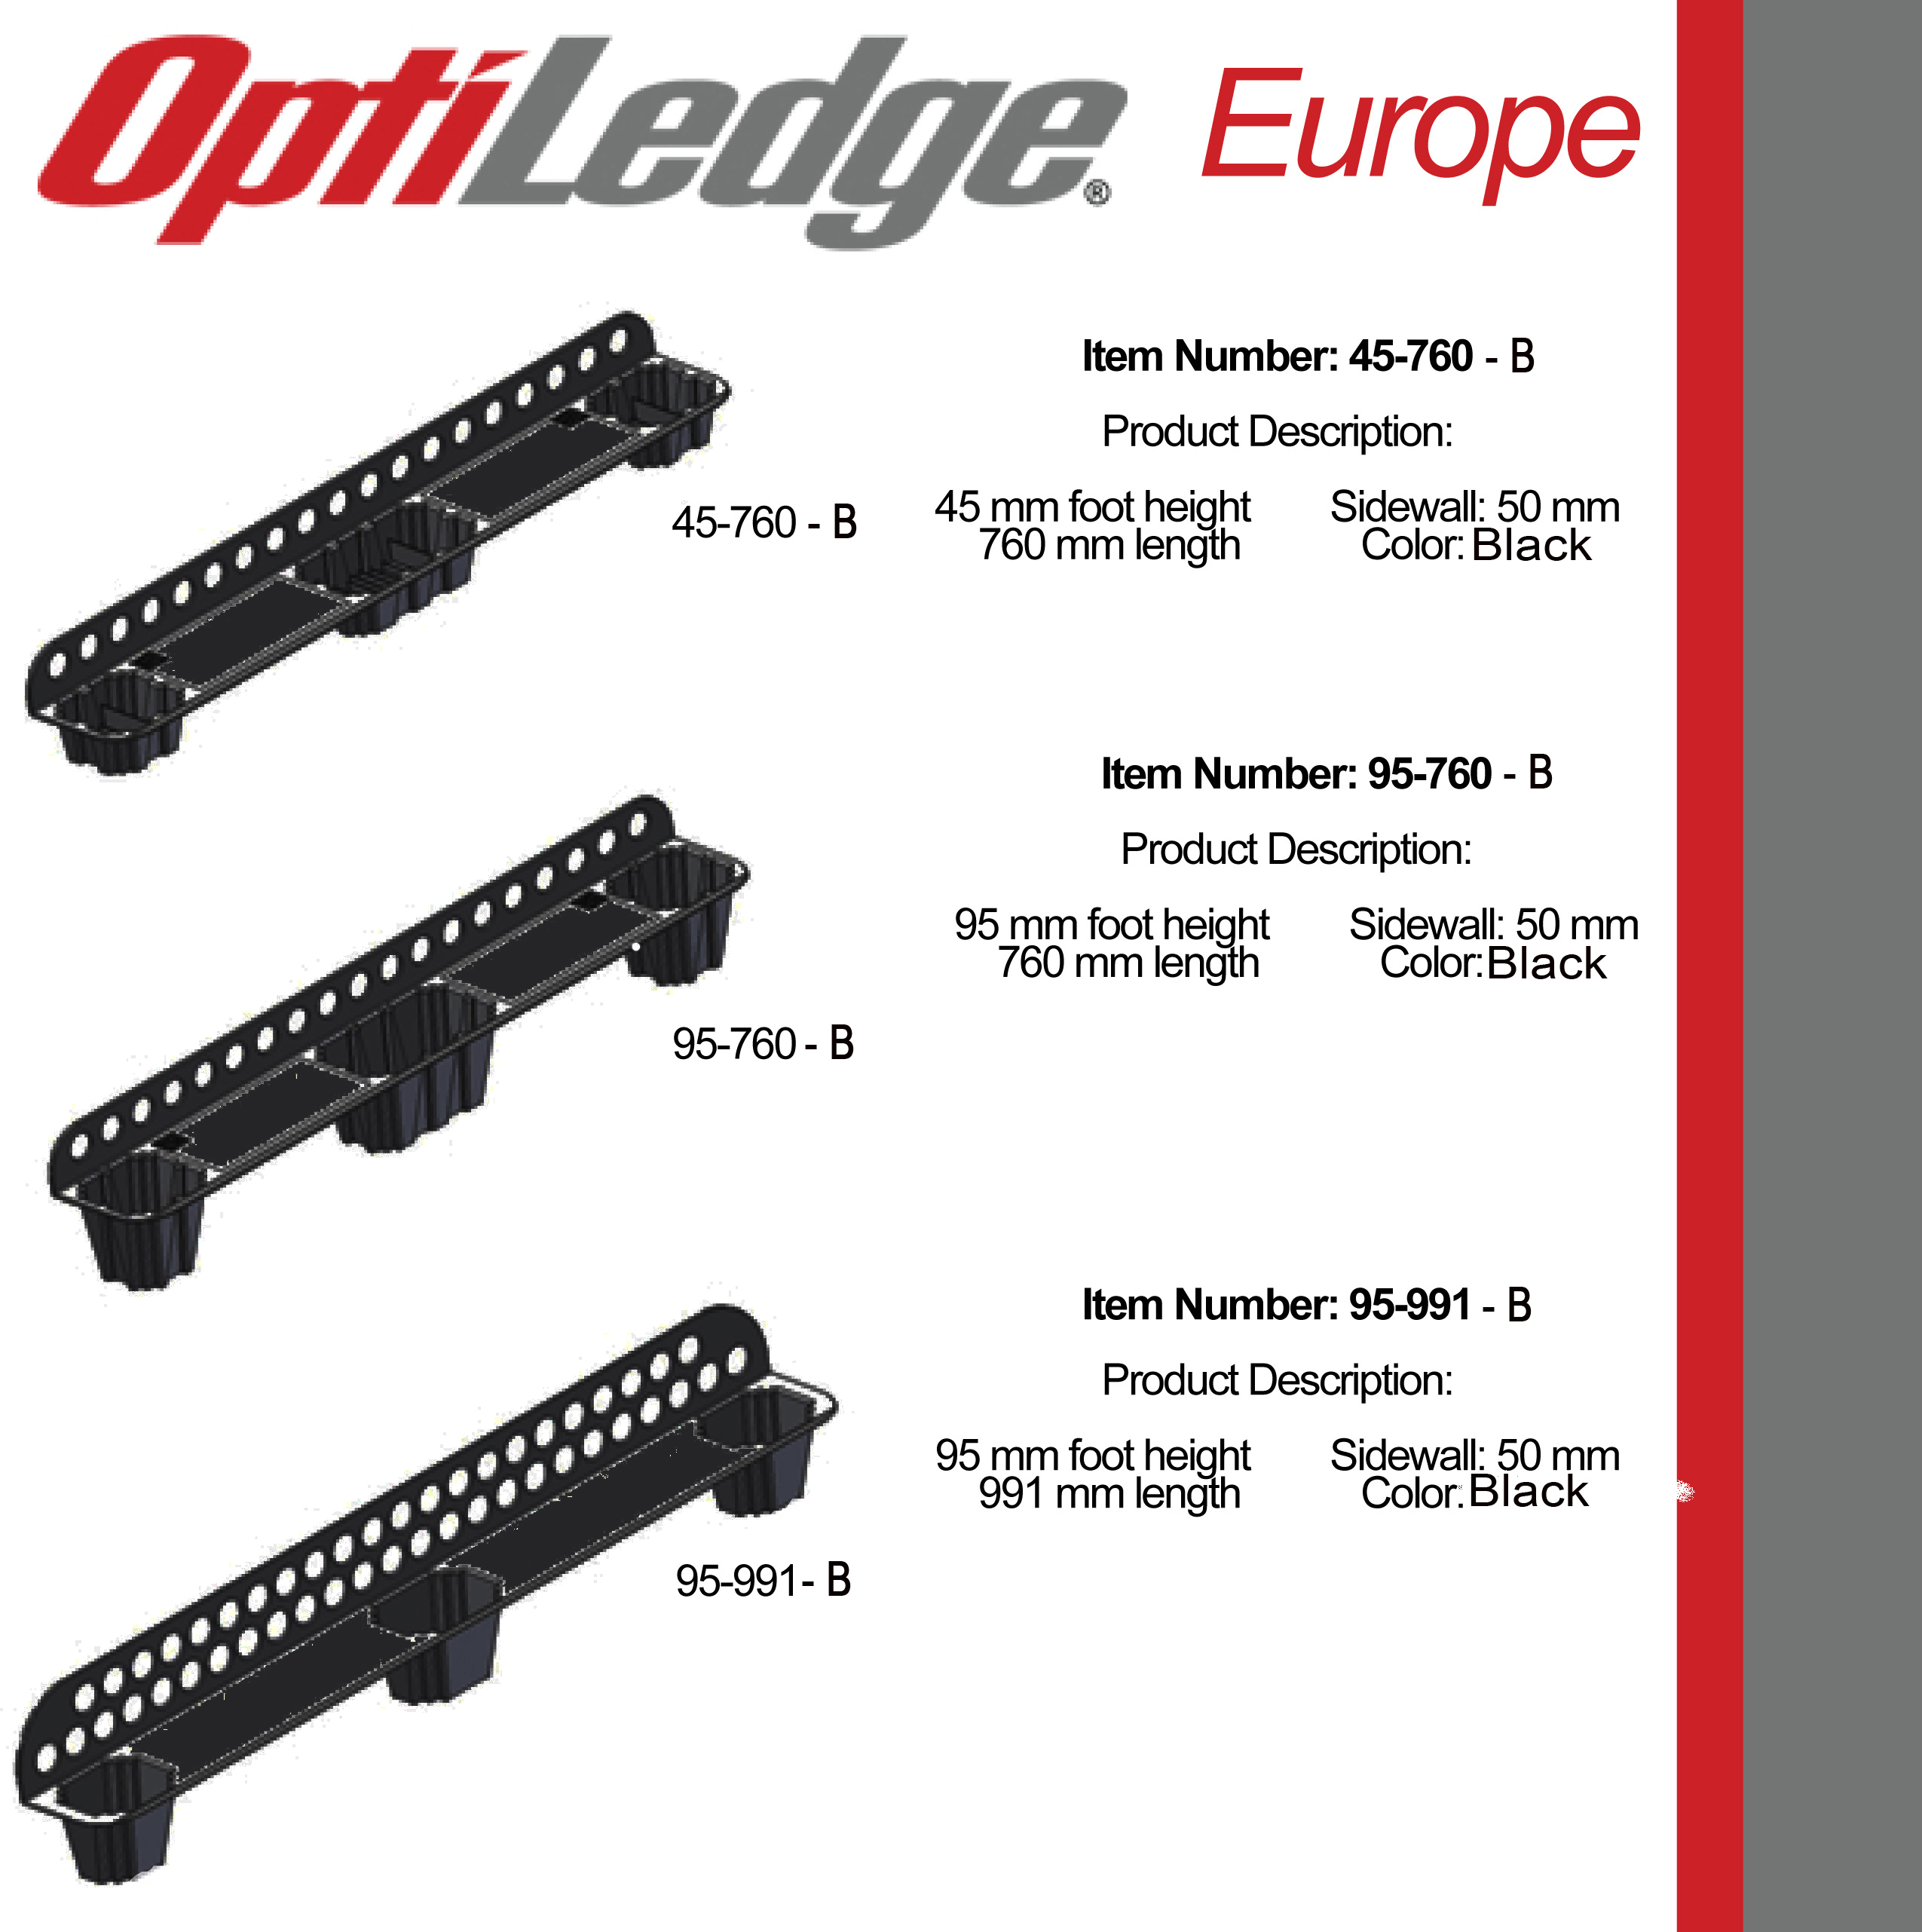 optiledge-europe_copy_1.jpg